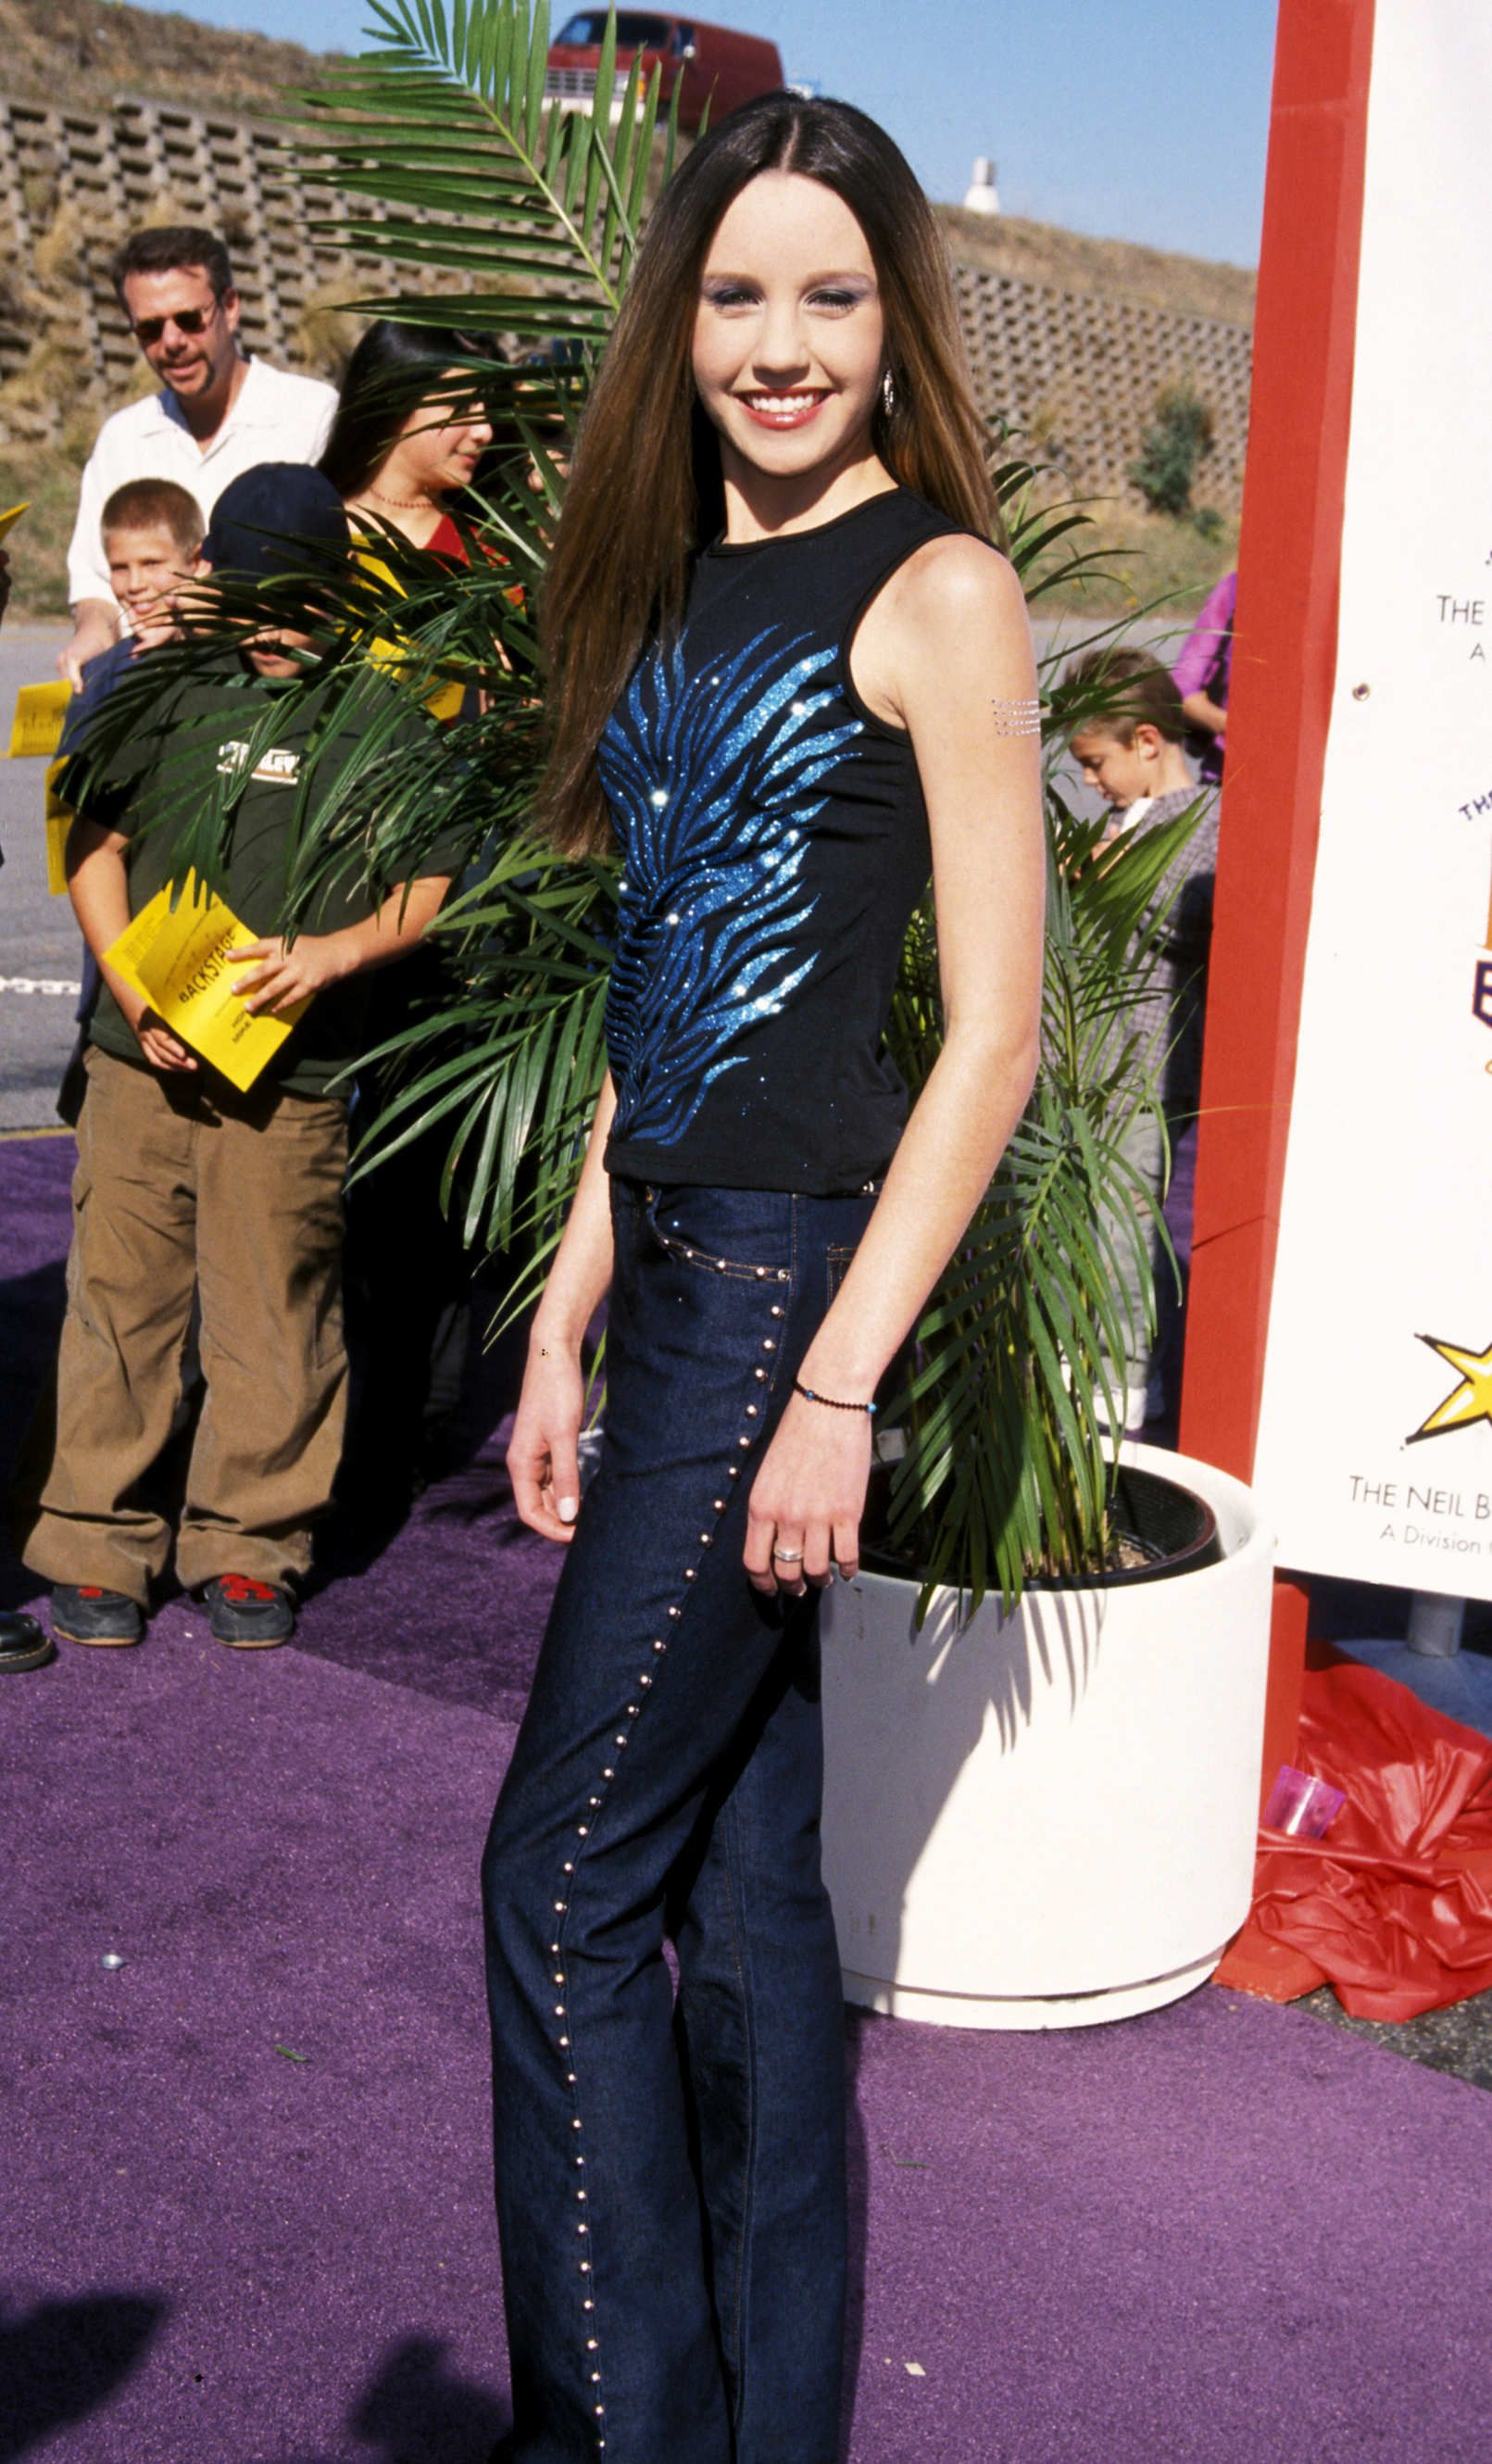 Amanda Bynes Then And Now 15 Years In Pictures Early 2000s Fashion 2000s Fashion Outfits 00s Fashion